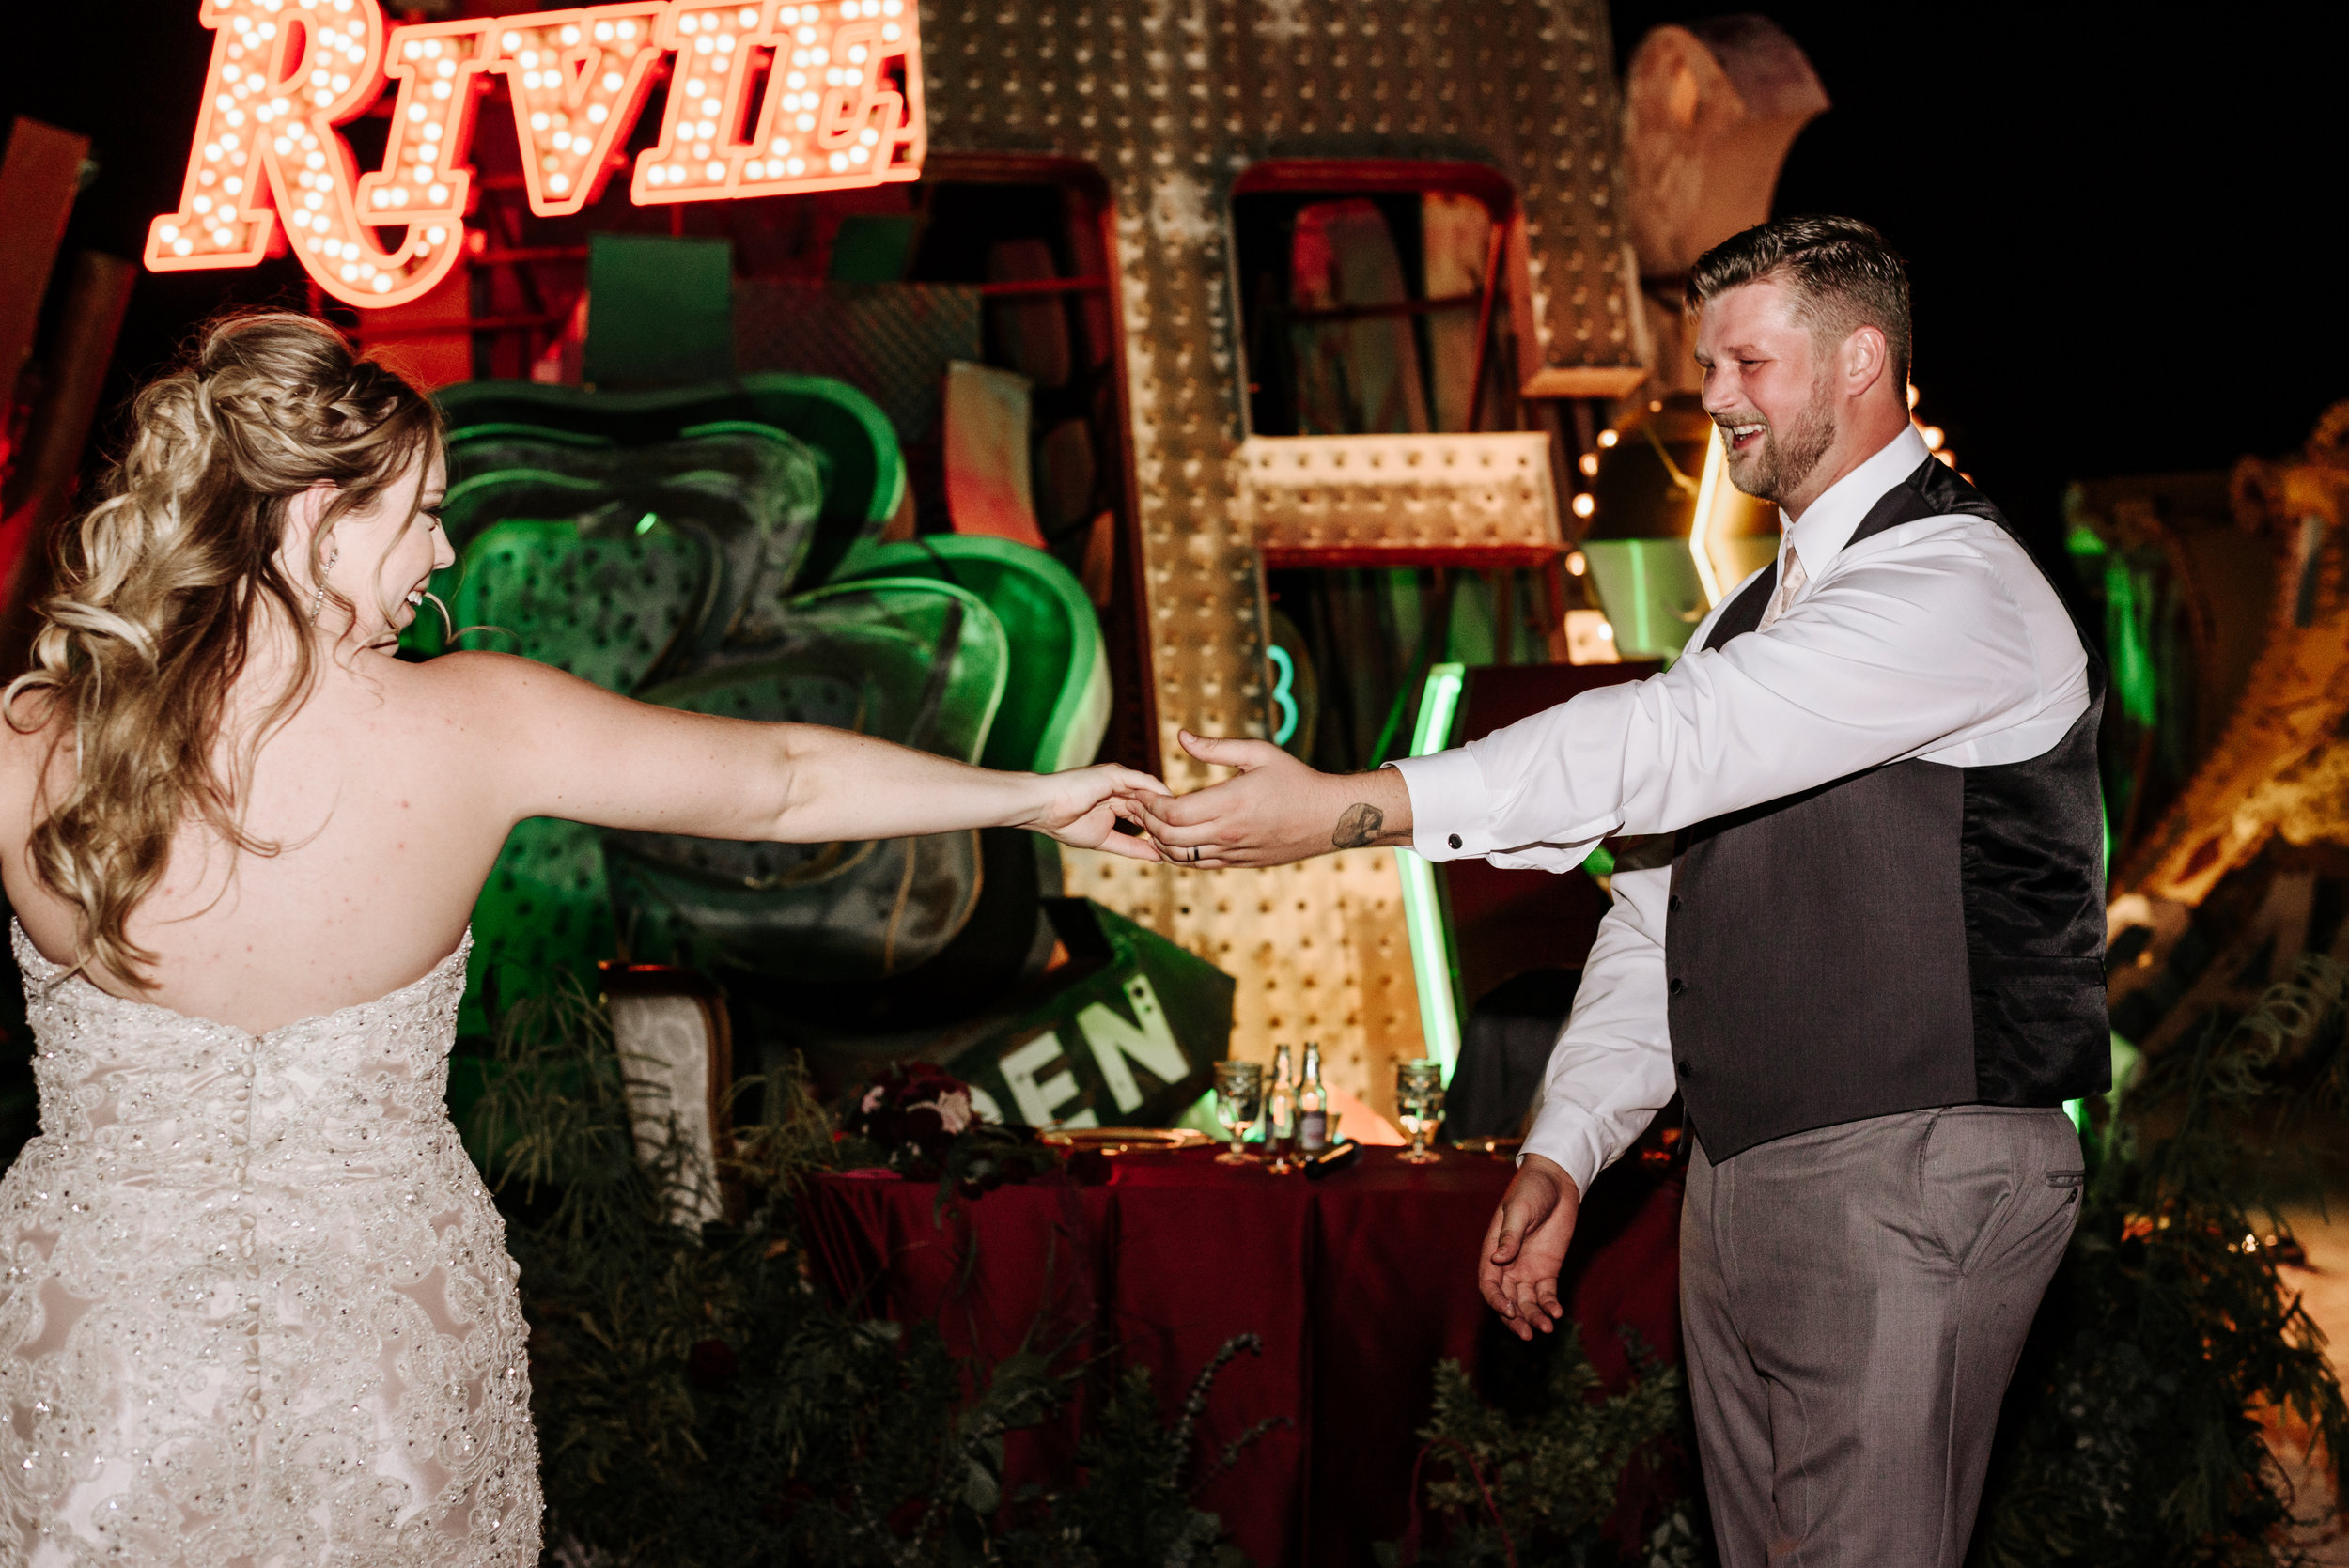 Neon-Museum-Wedding-Las-Vegas-Nevada-Golden-Nugget-Photography-by-V-Ally-and-Dan-7143.jpg